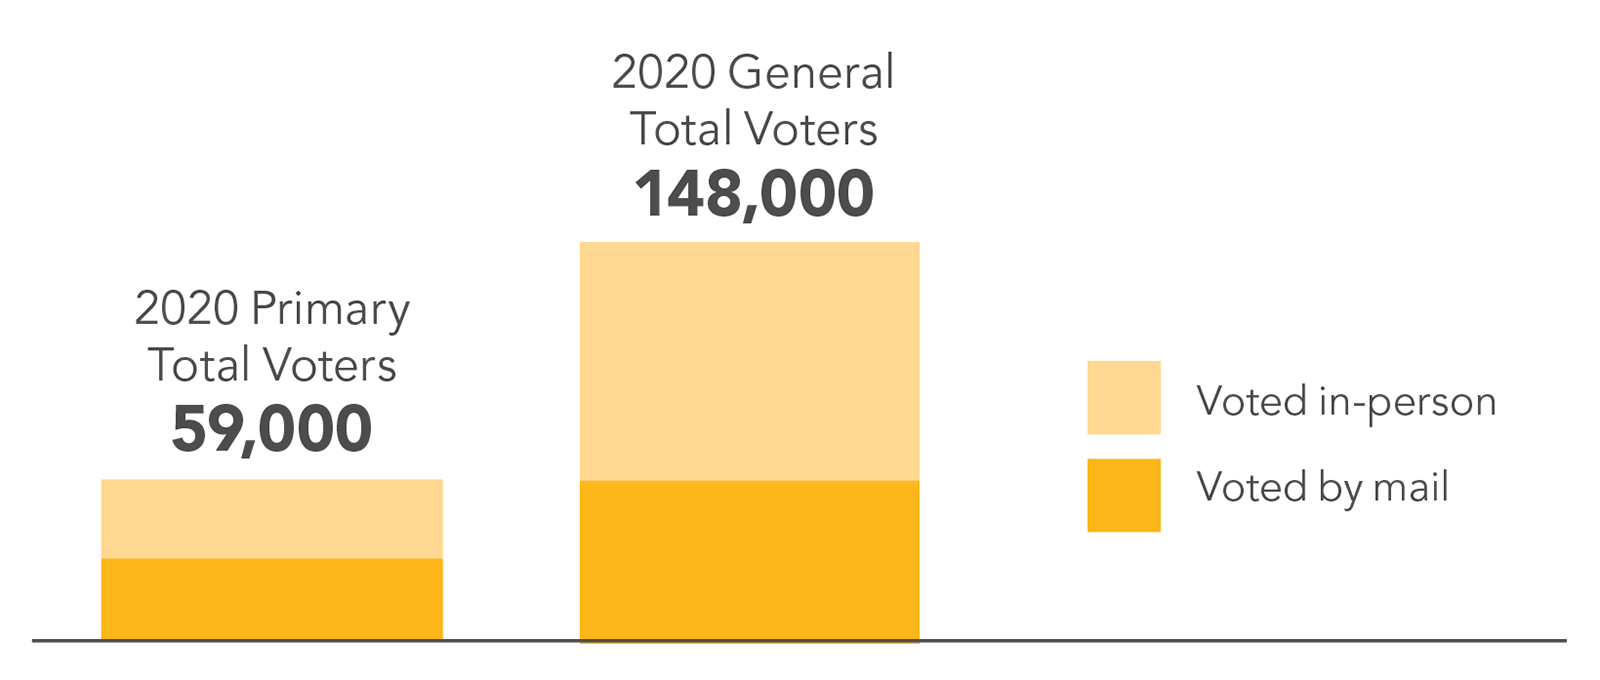 Bar graph comparing total voter counts for Cumberland County in 2020: 59,000 voters for the primary and 148,000 voters for the general election.